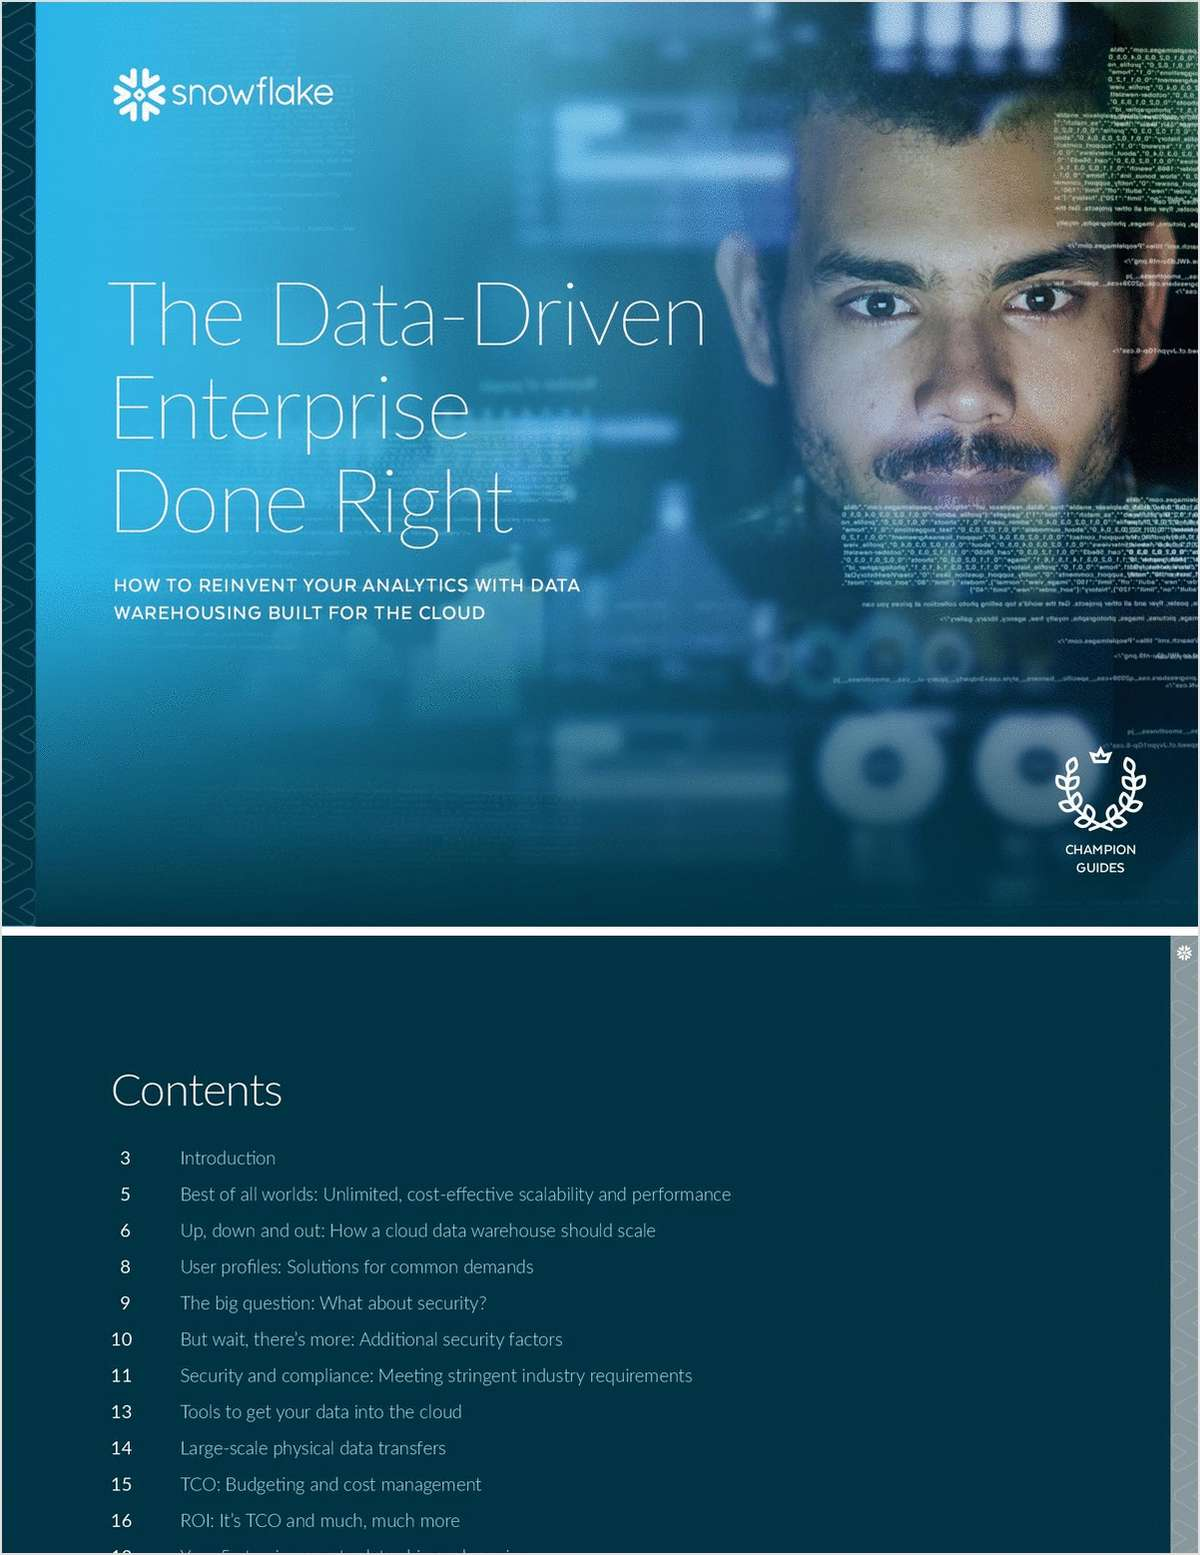 The Data Driven Enterprise Done Right